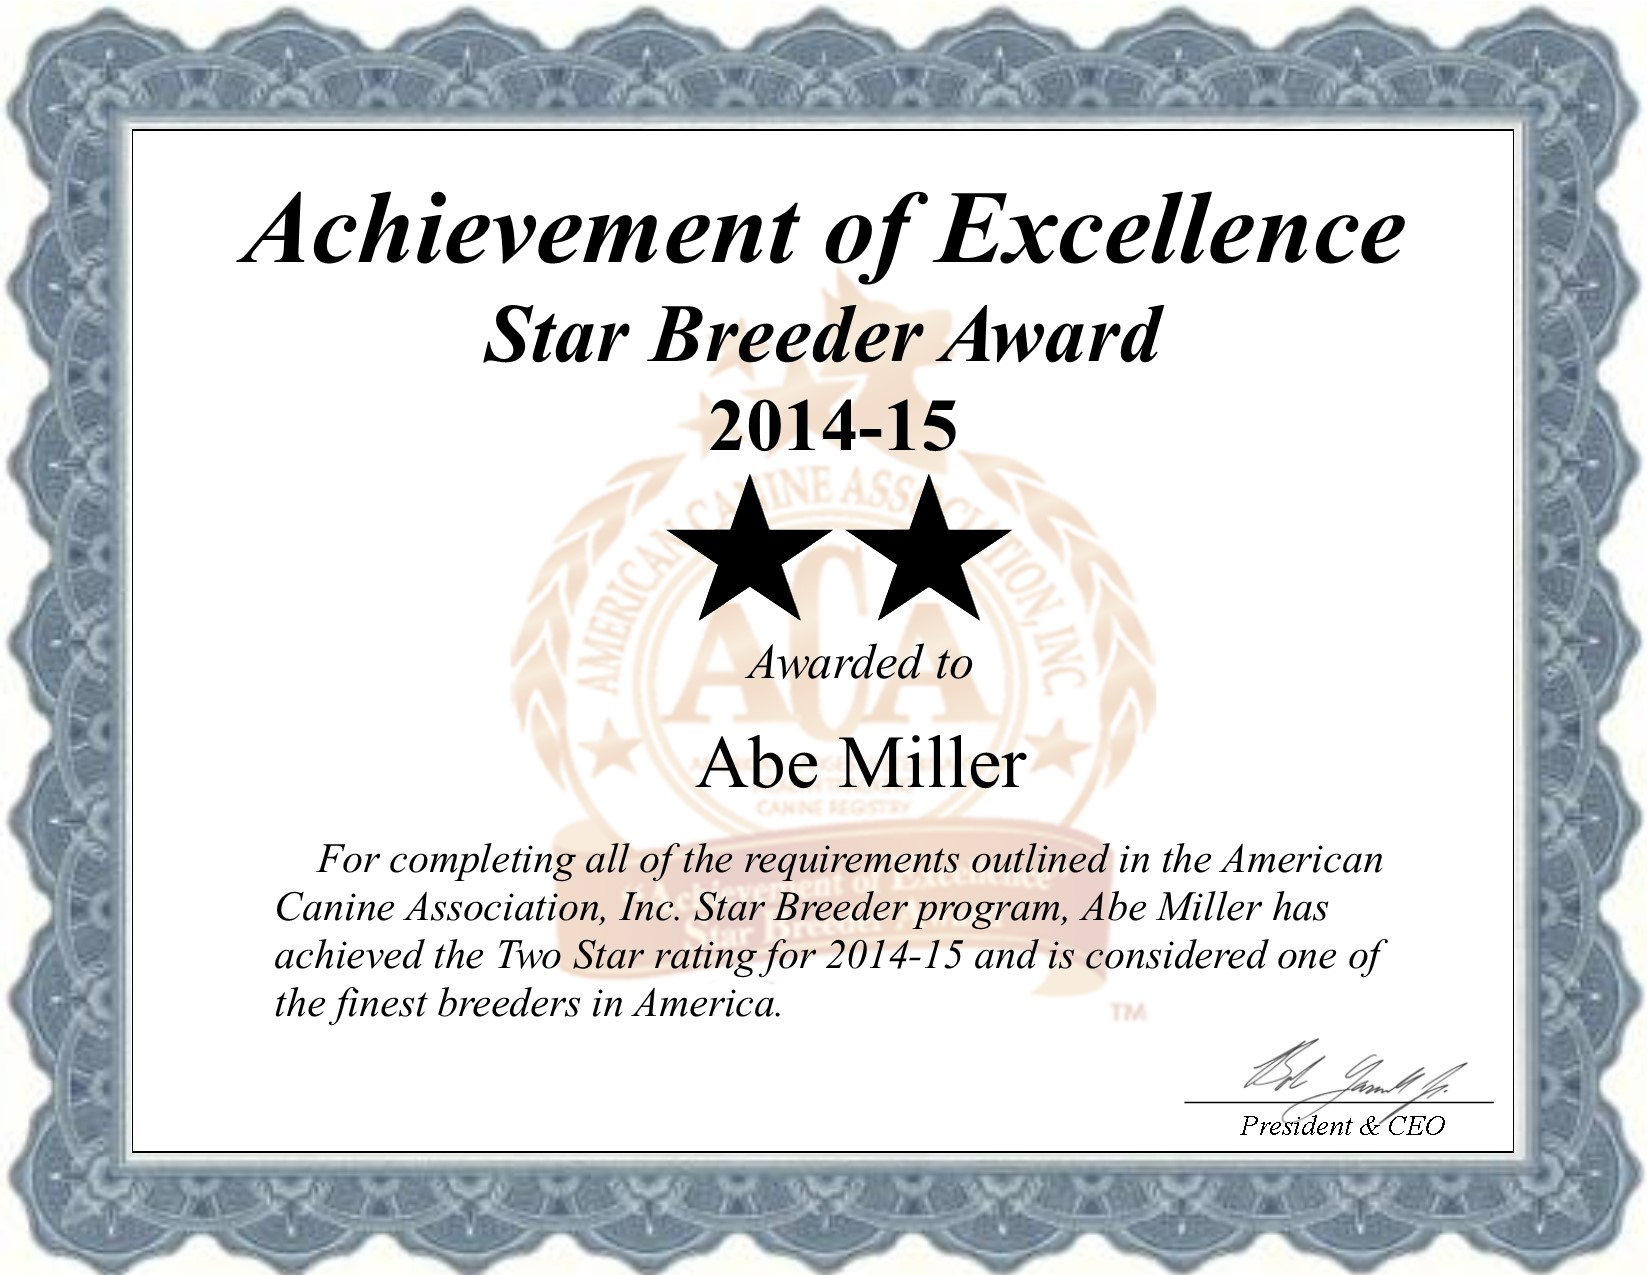 Abe, Miller, dog, breeder, abe-miller, dog-breeder, abraham, Miller kennel, broker, house, of, pets, breeders, star, hose-of-pets, star-breeder, 5 star, ACA, fresno, Ohio, oh, dog, puppy, puppies, five star, puppy mill, puppymill, professional, show, starbreeders, pet, pet store